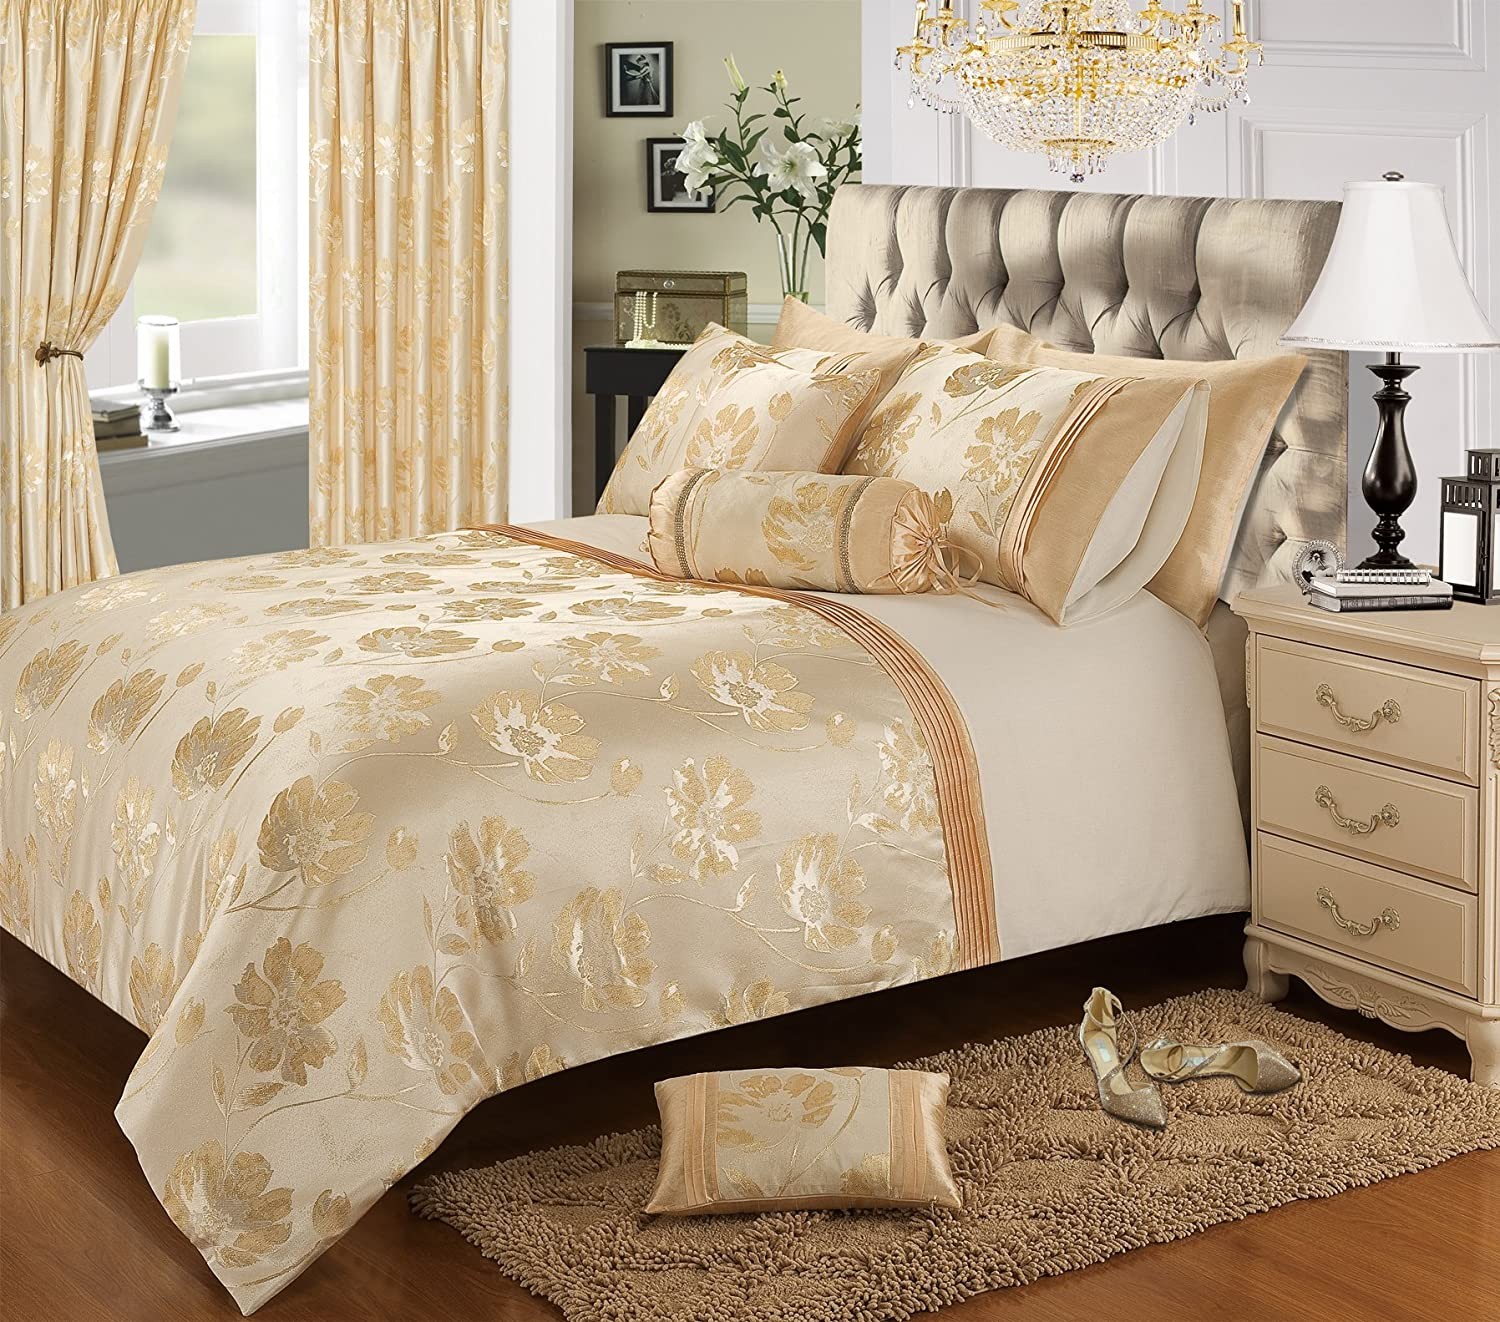 Home Bedding Store Premium Double Bed Luxury Jacquard Gold Cream